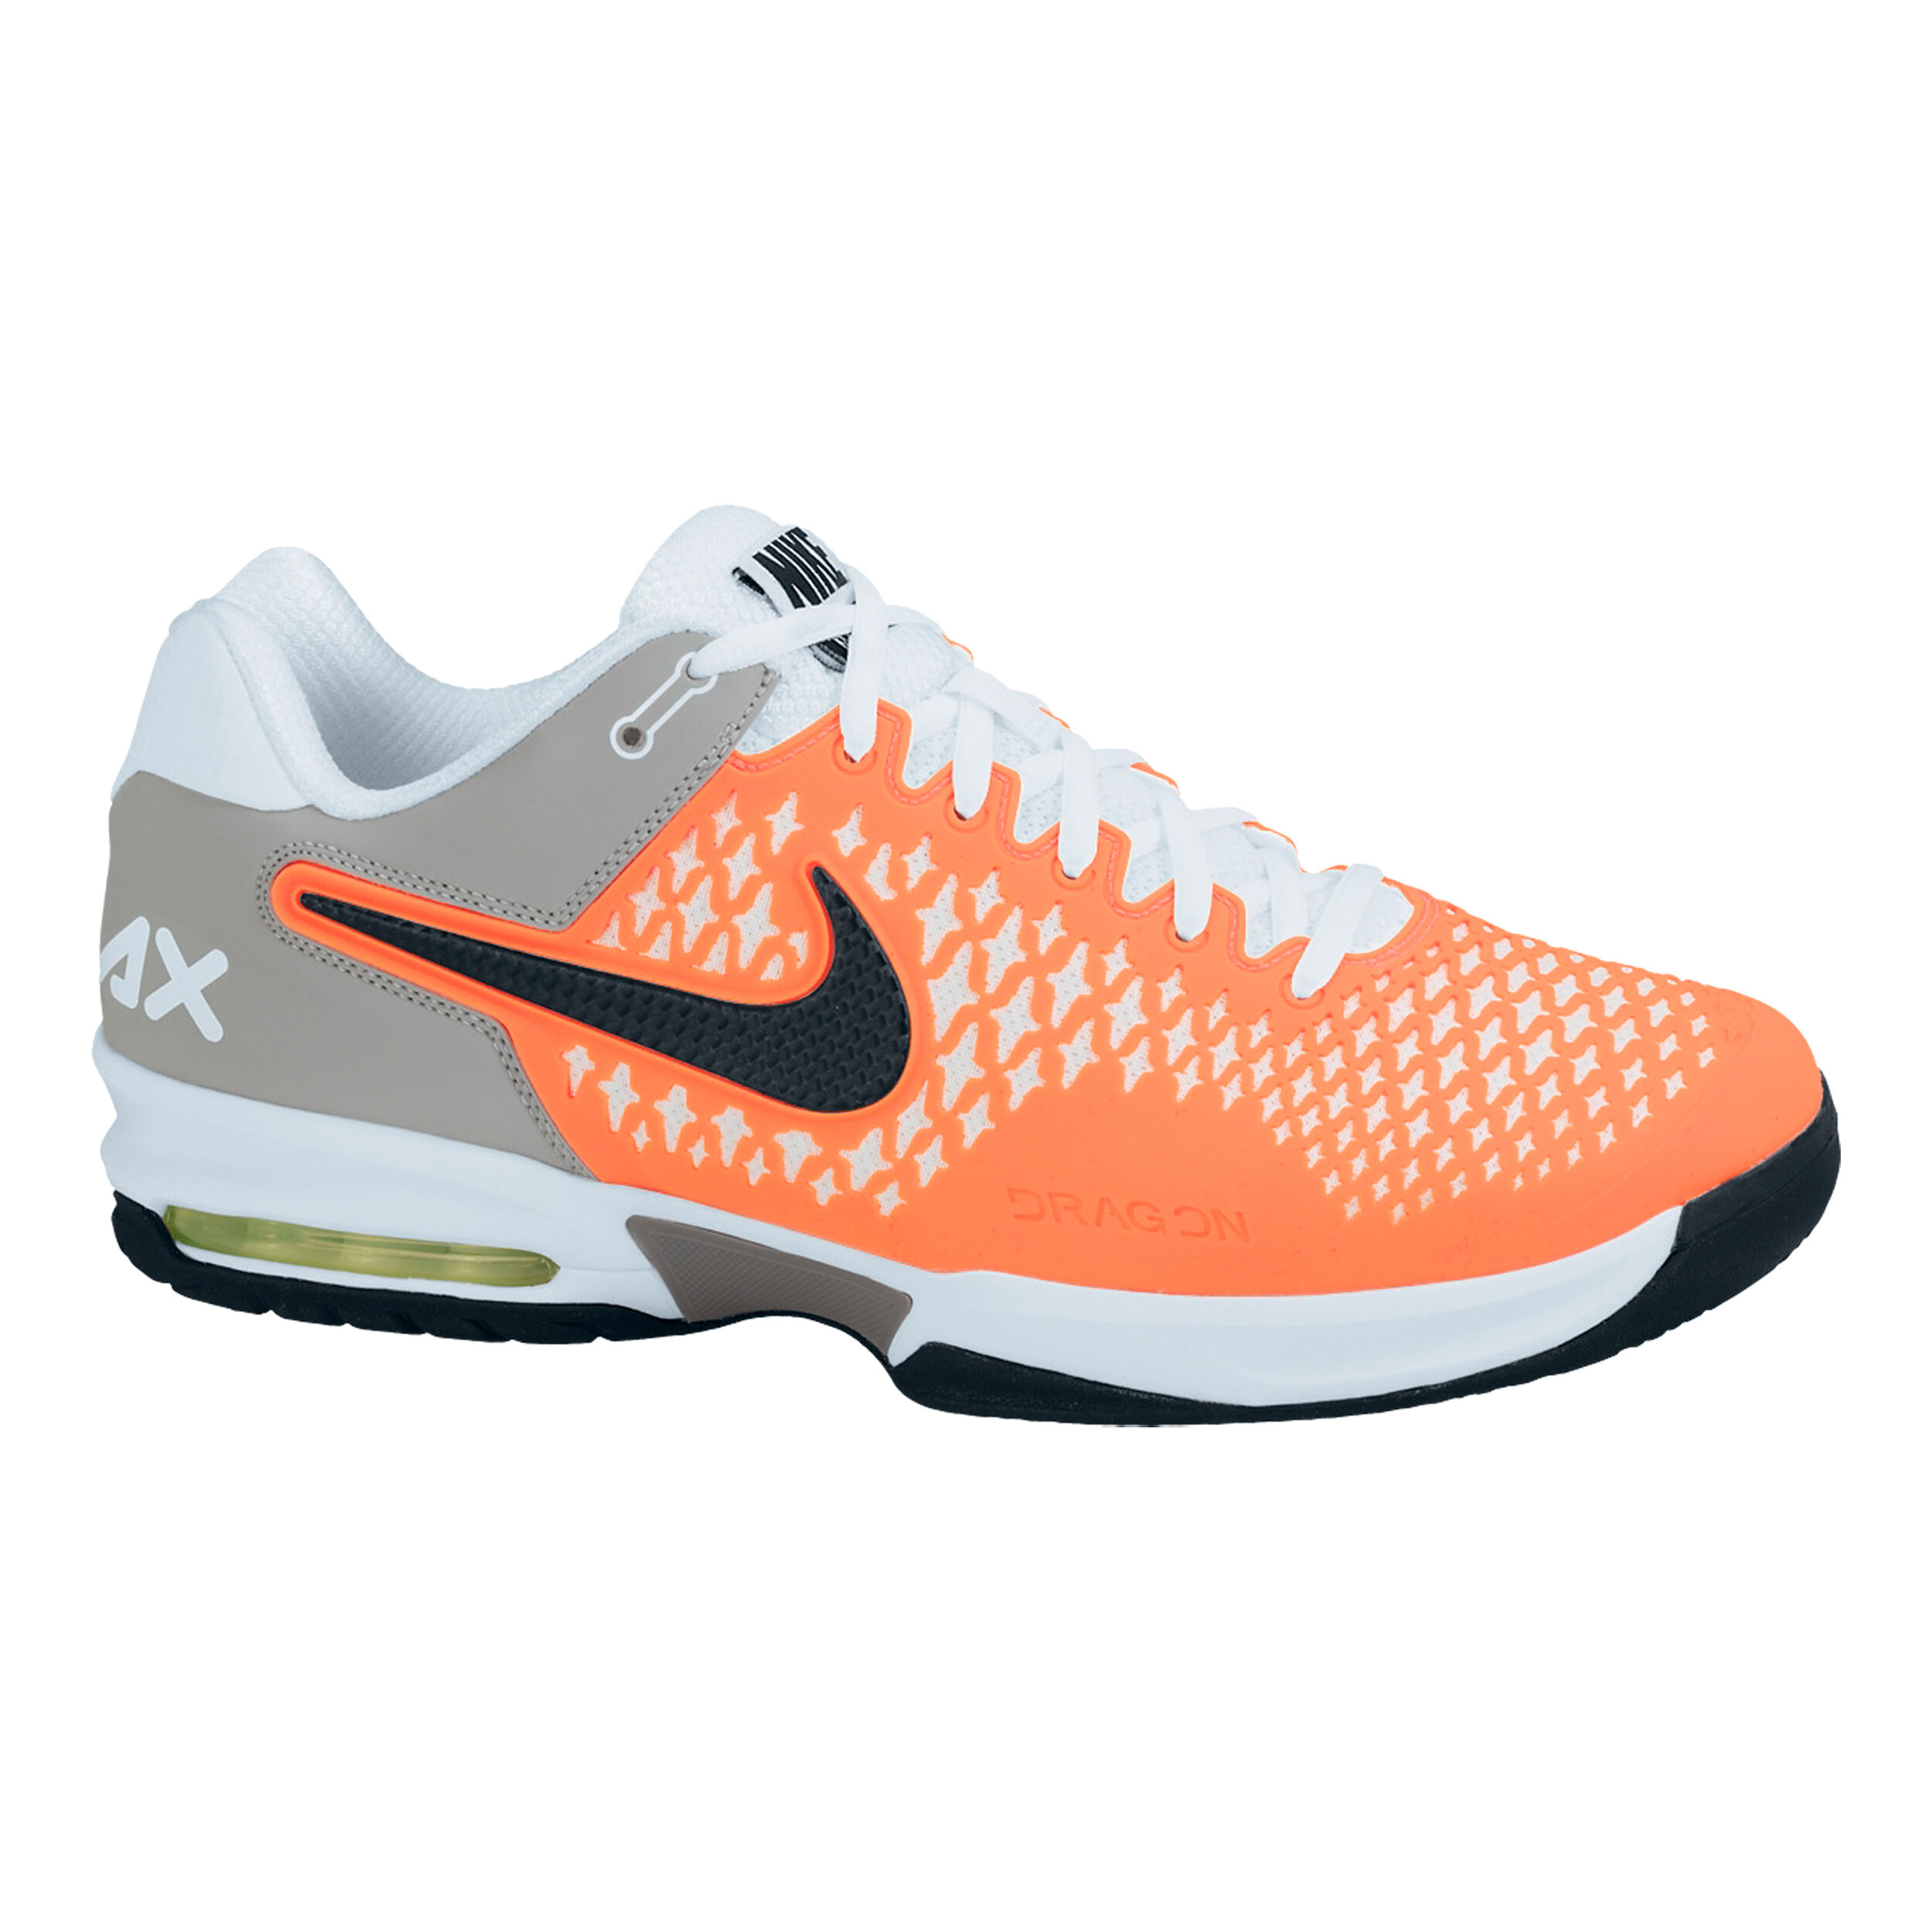 Nike Air Max Cage All Court Shoe Men